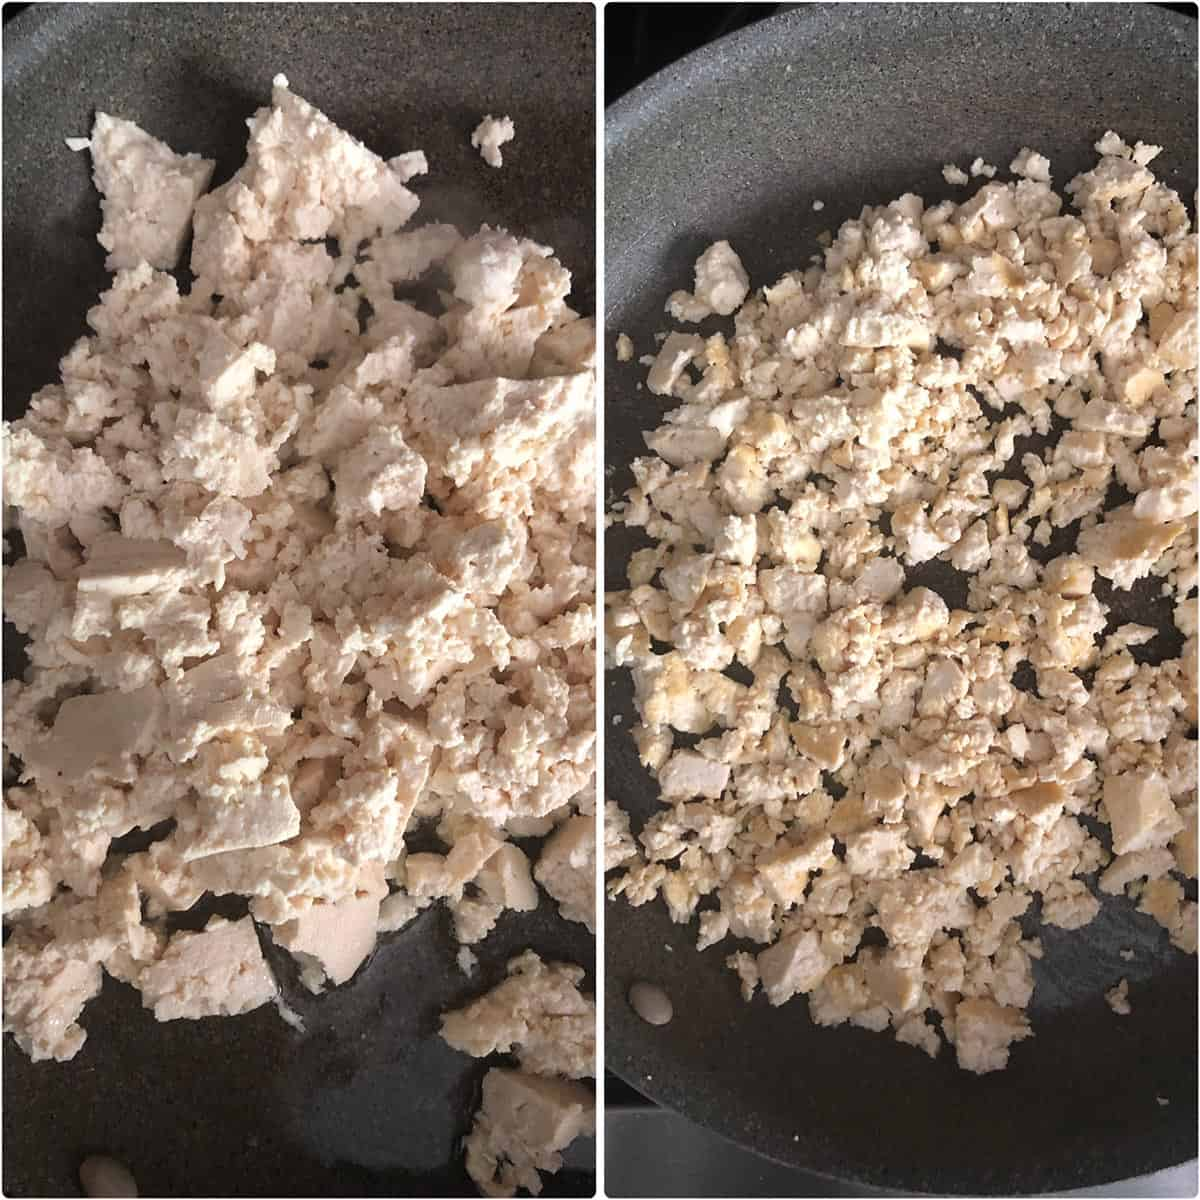 Side by side photos of crumbled tofu cooked till golden brown